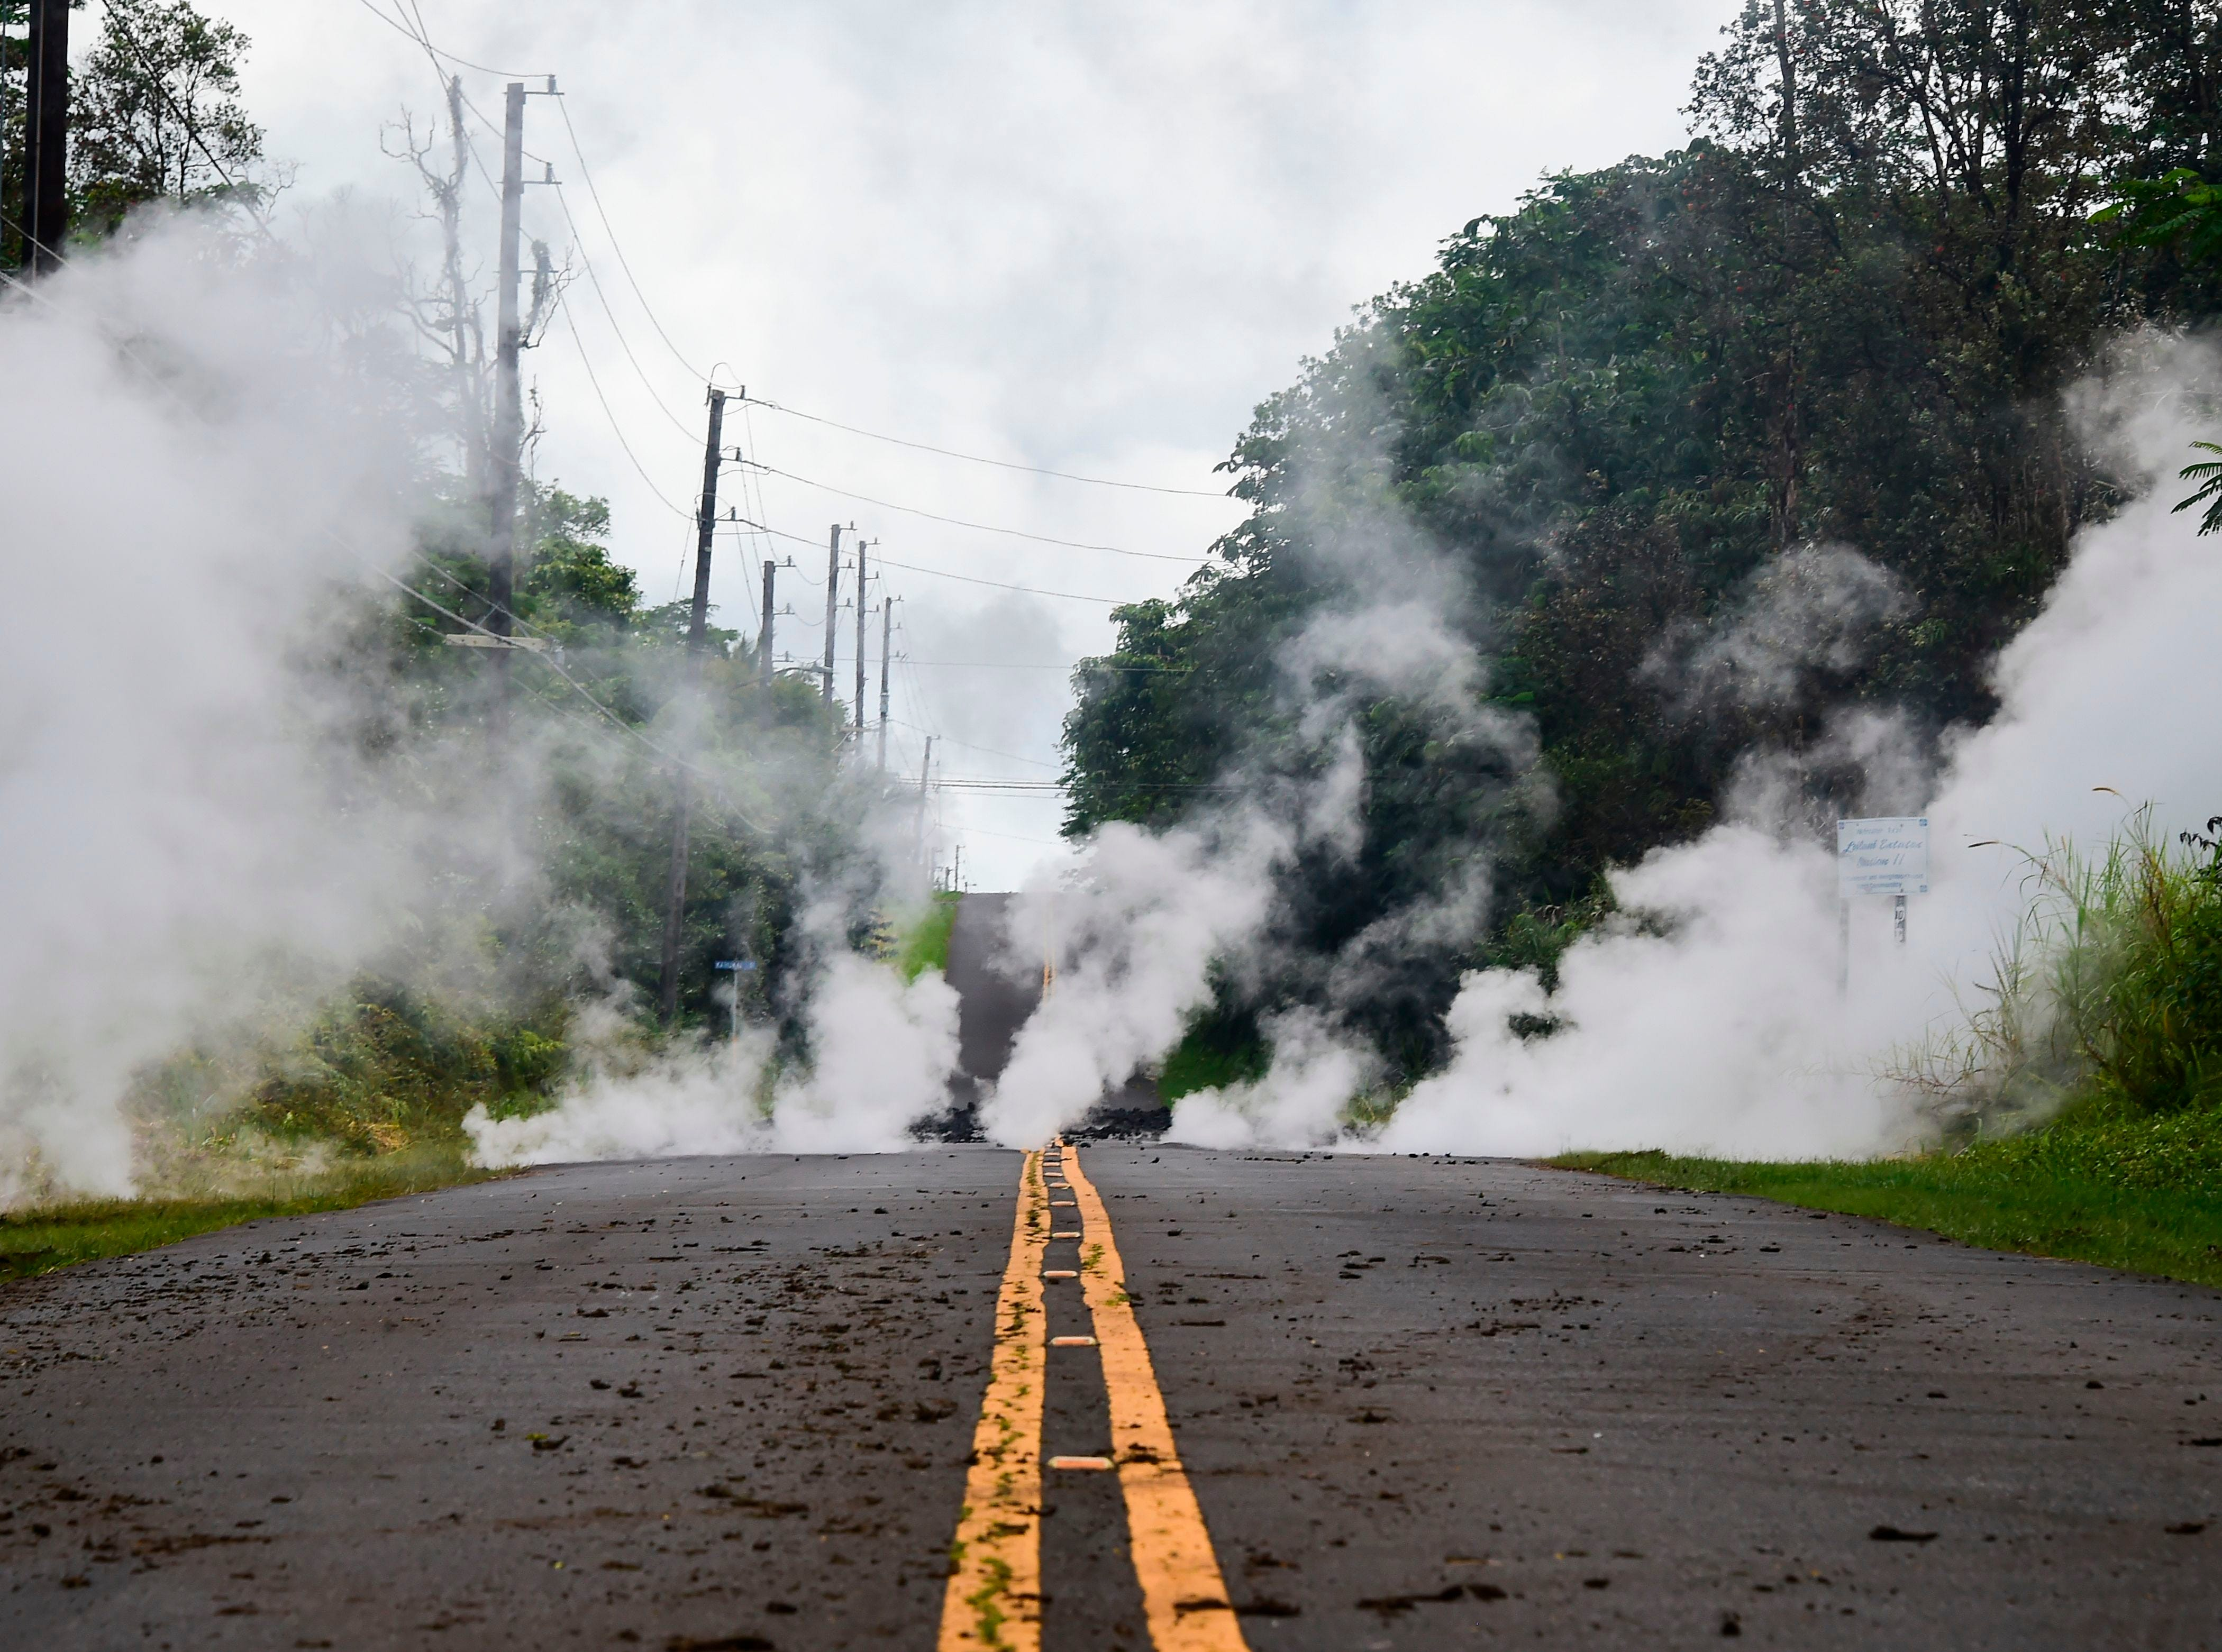 May 4, 2018: Steam rises from a fissure on a road in Leilani Estates subdivision on Hawaii's Big Island. Up to 10,000 people have been asked to leave their homes on Hawaii's Big Island following the eruption of the Kilauea volcano that came after a series of recent earthquakes.